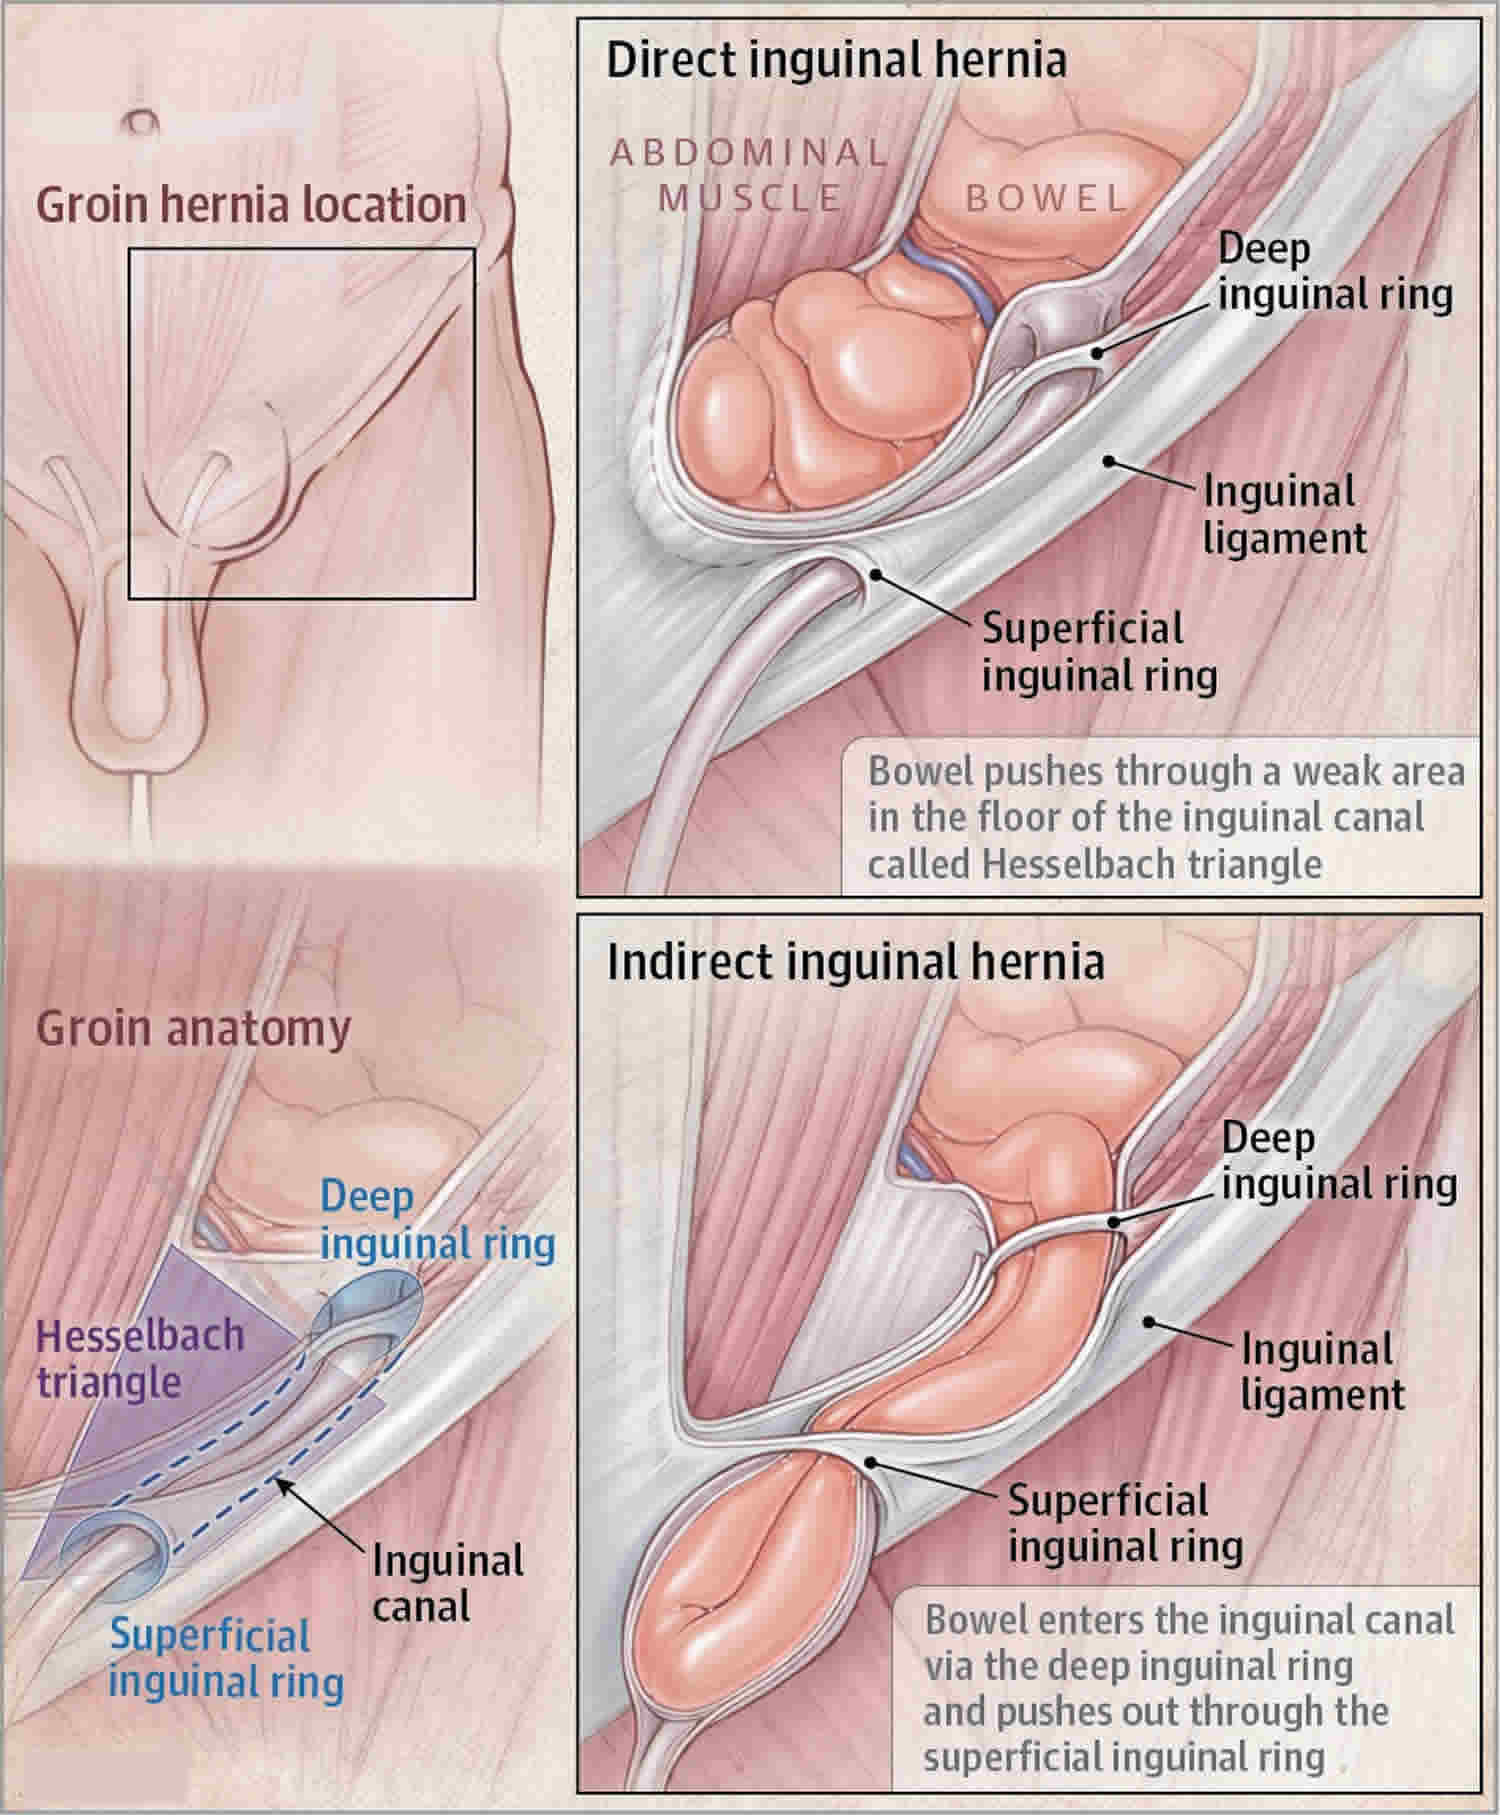 Lump on testicle - painful lump or painless lump causes